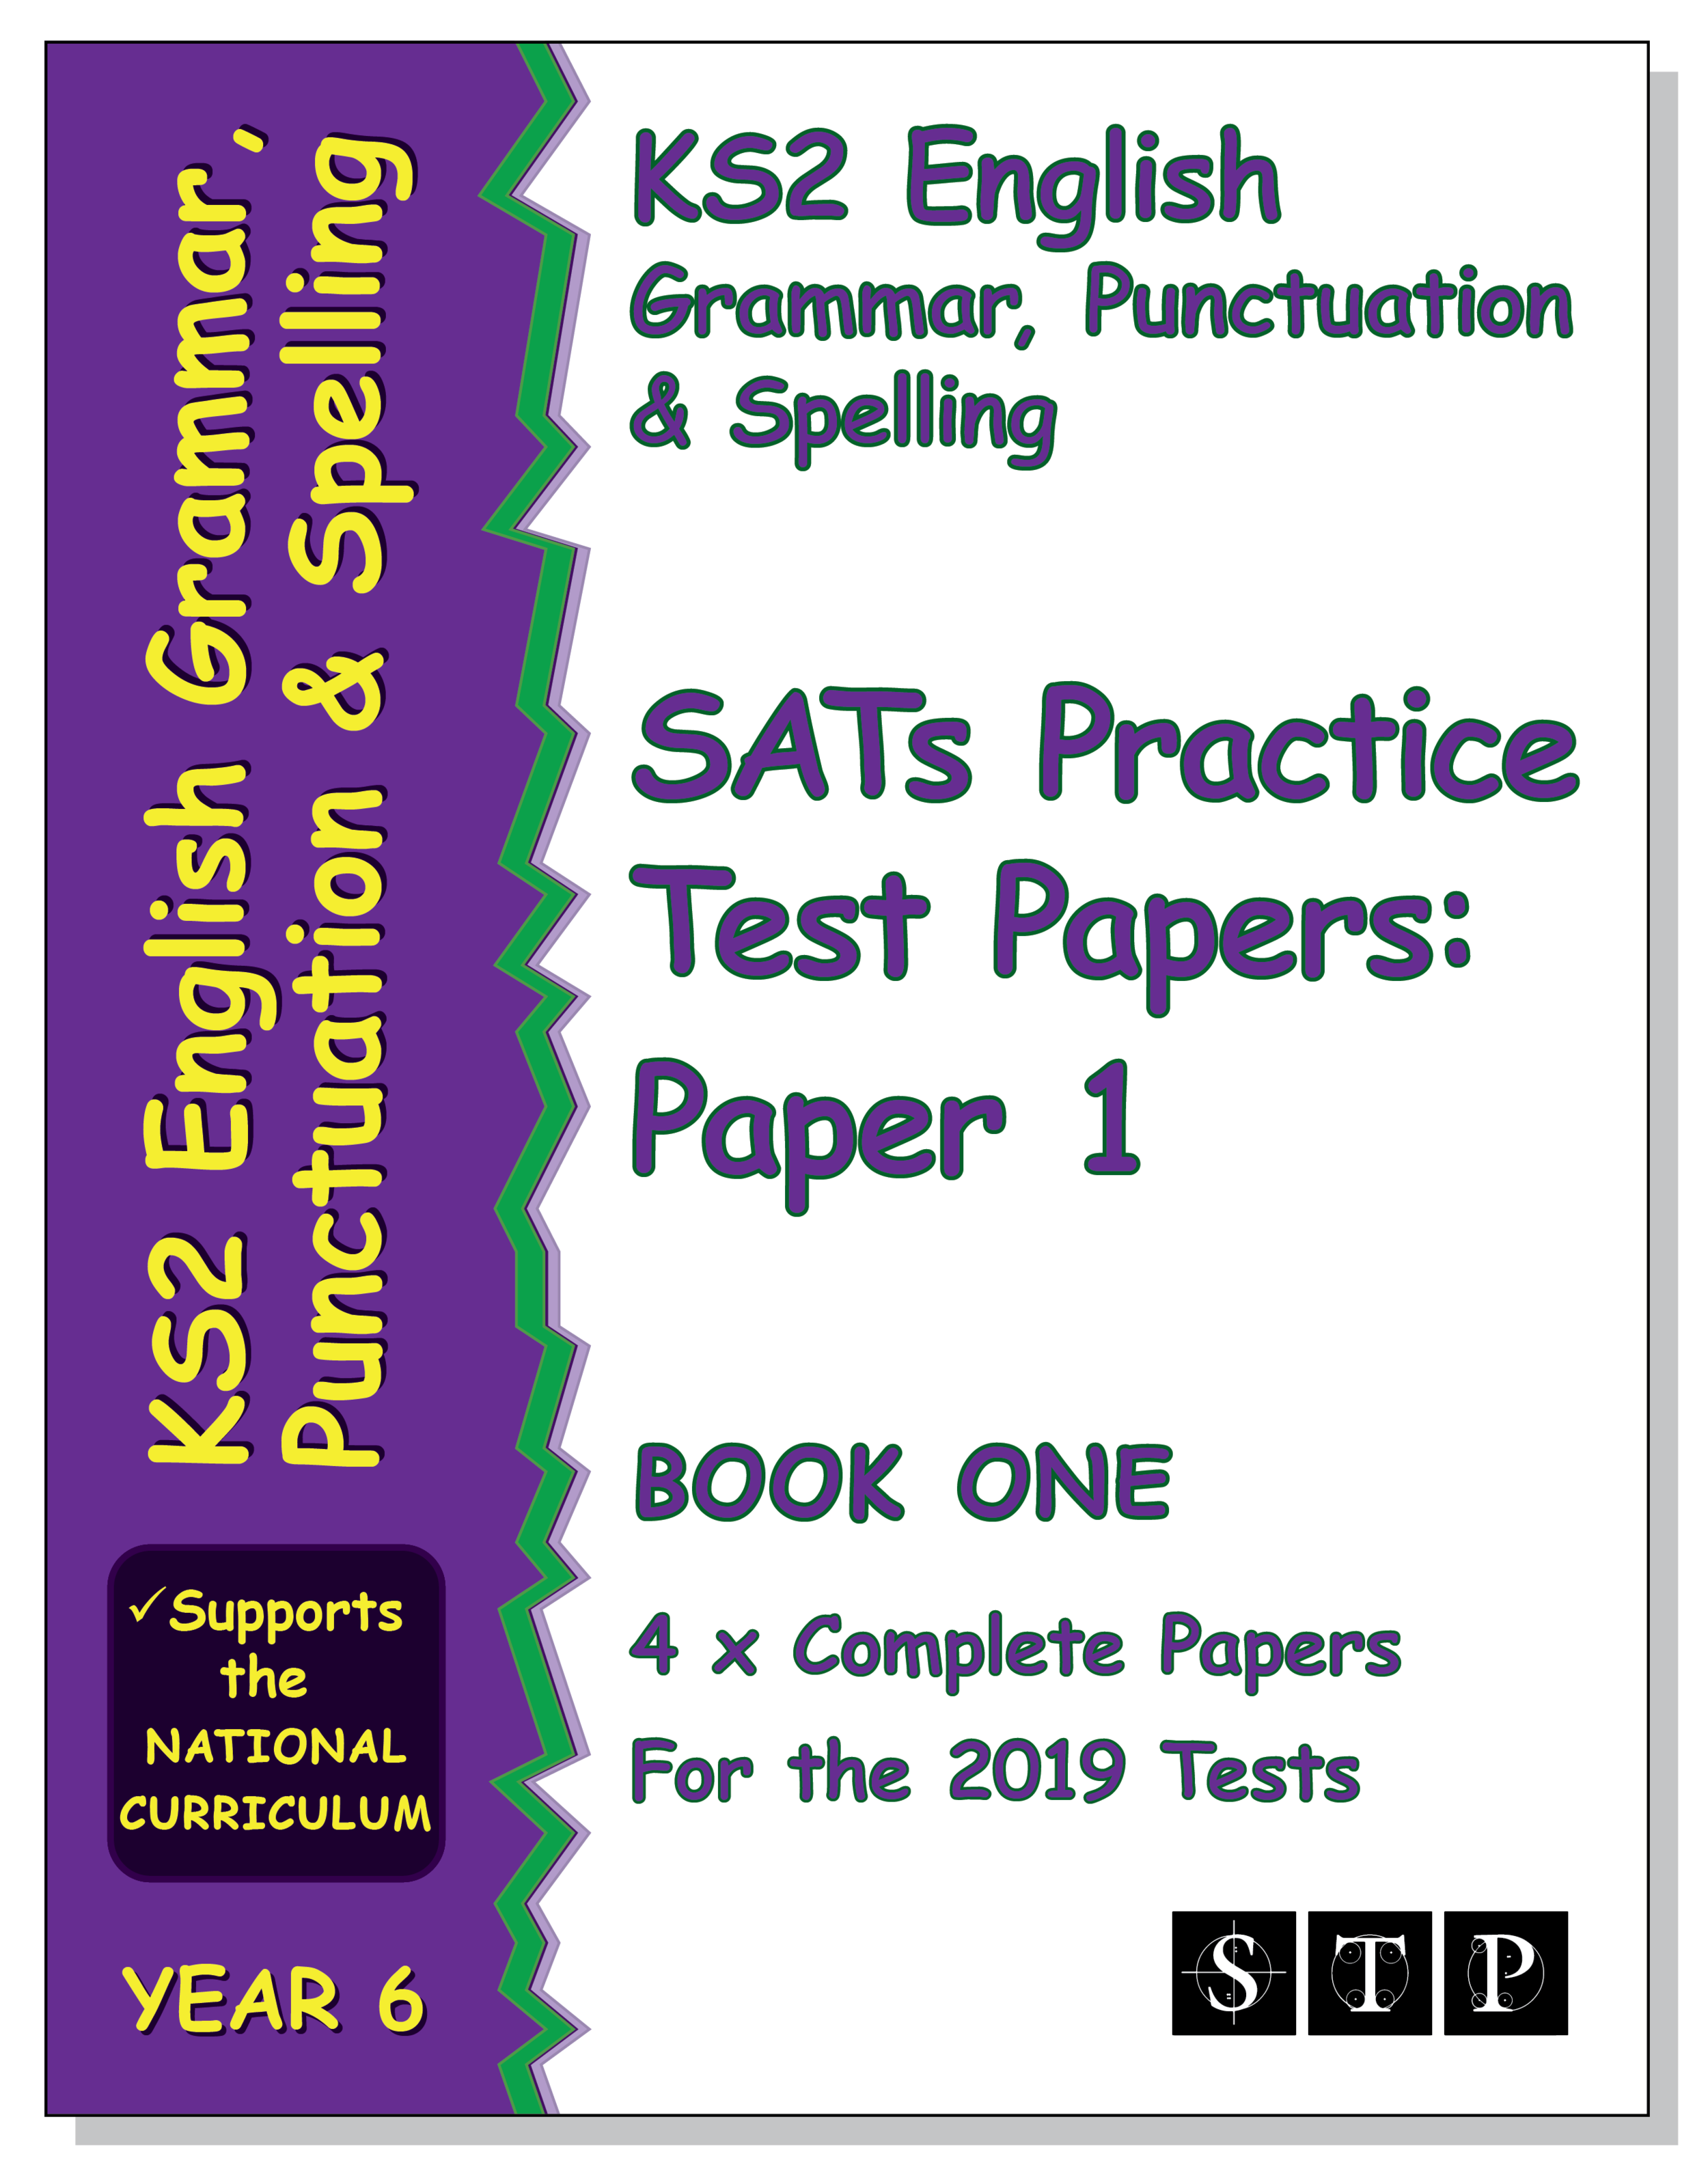 STP Books KS2 English Grammar, Punctuation and Spelling SATs Practice Test Papers for the 2019 Tests: Paper 1 – Book One (Year 6) (STP KS2 English Revision)